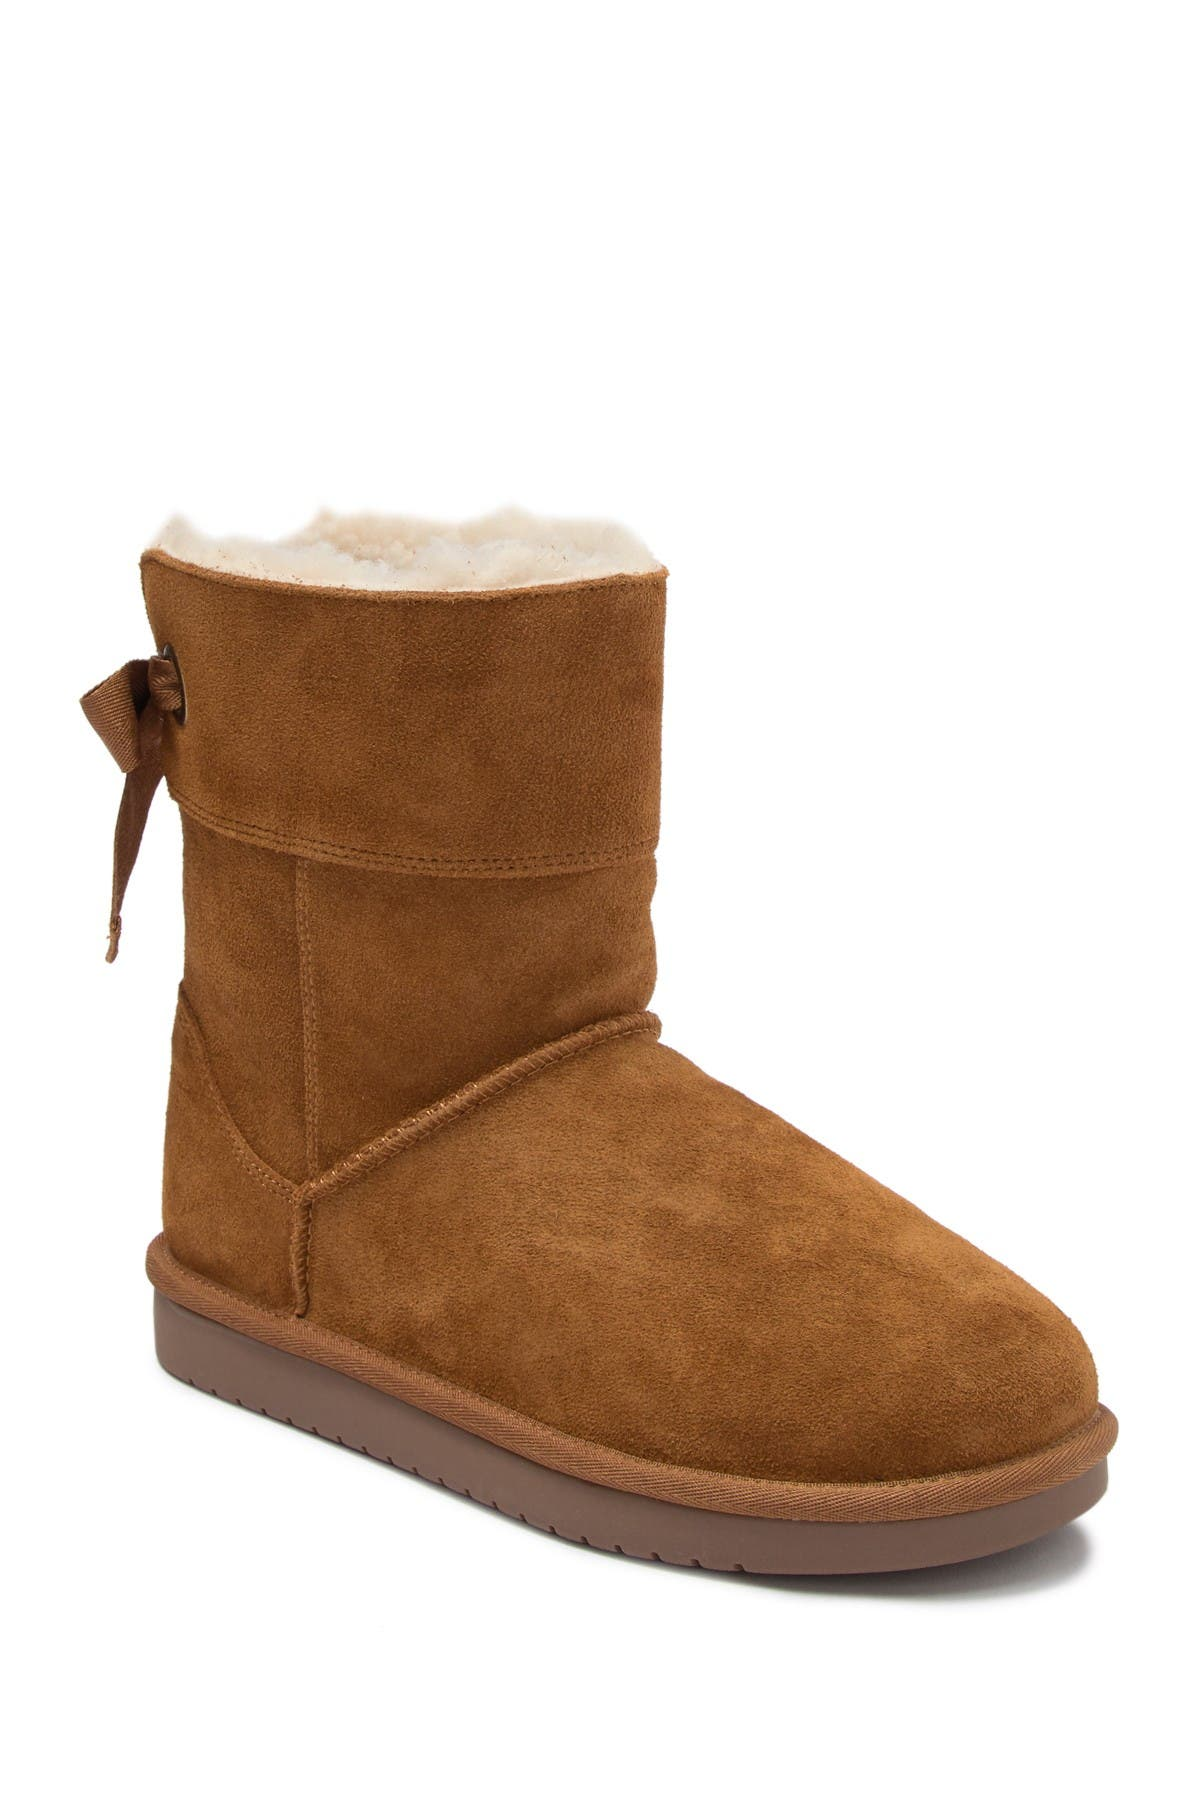 Image of KOOLABURRA BY UGG Andrah Suede Faux Fur Lined Short Boot